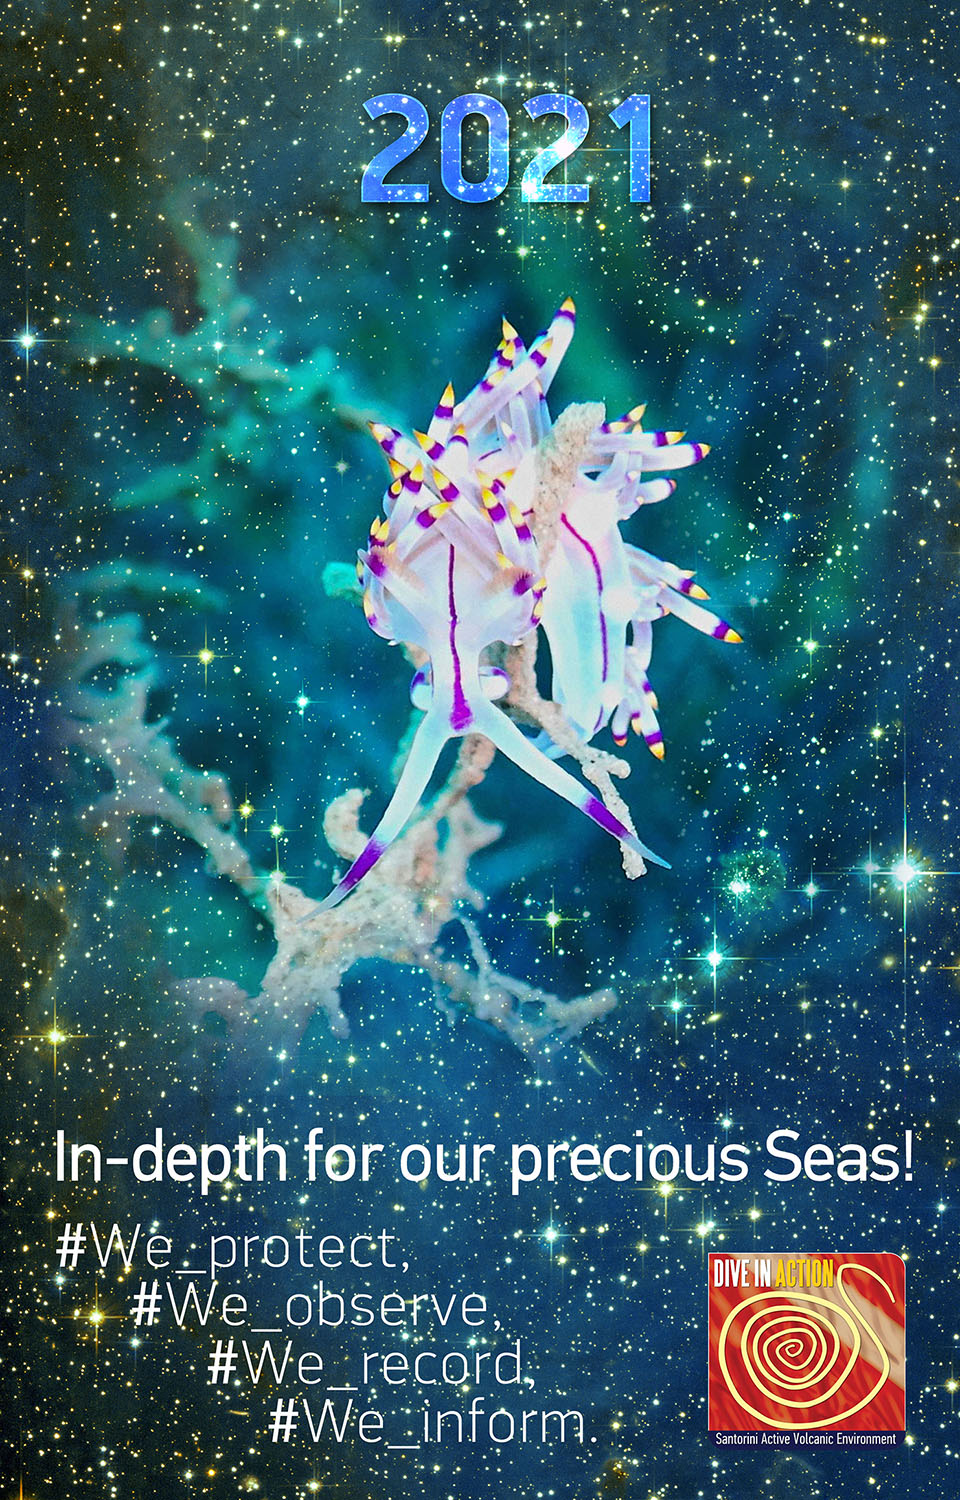 In-depth for our precious seas!